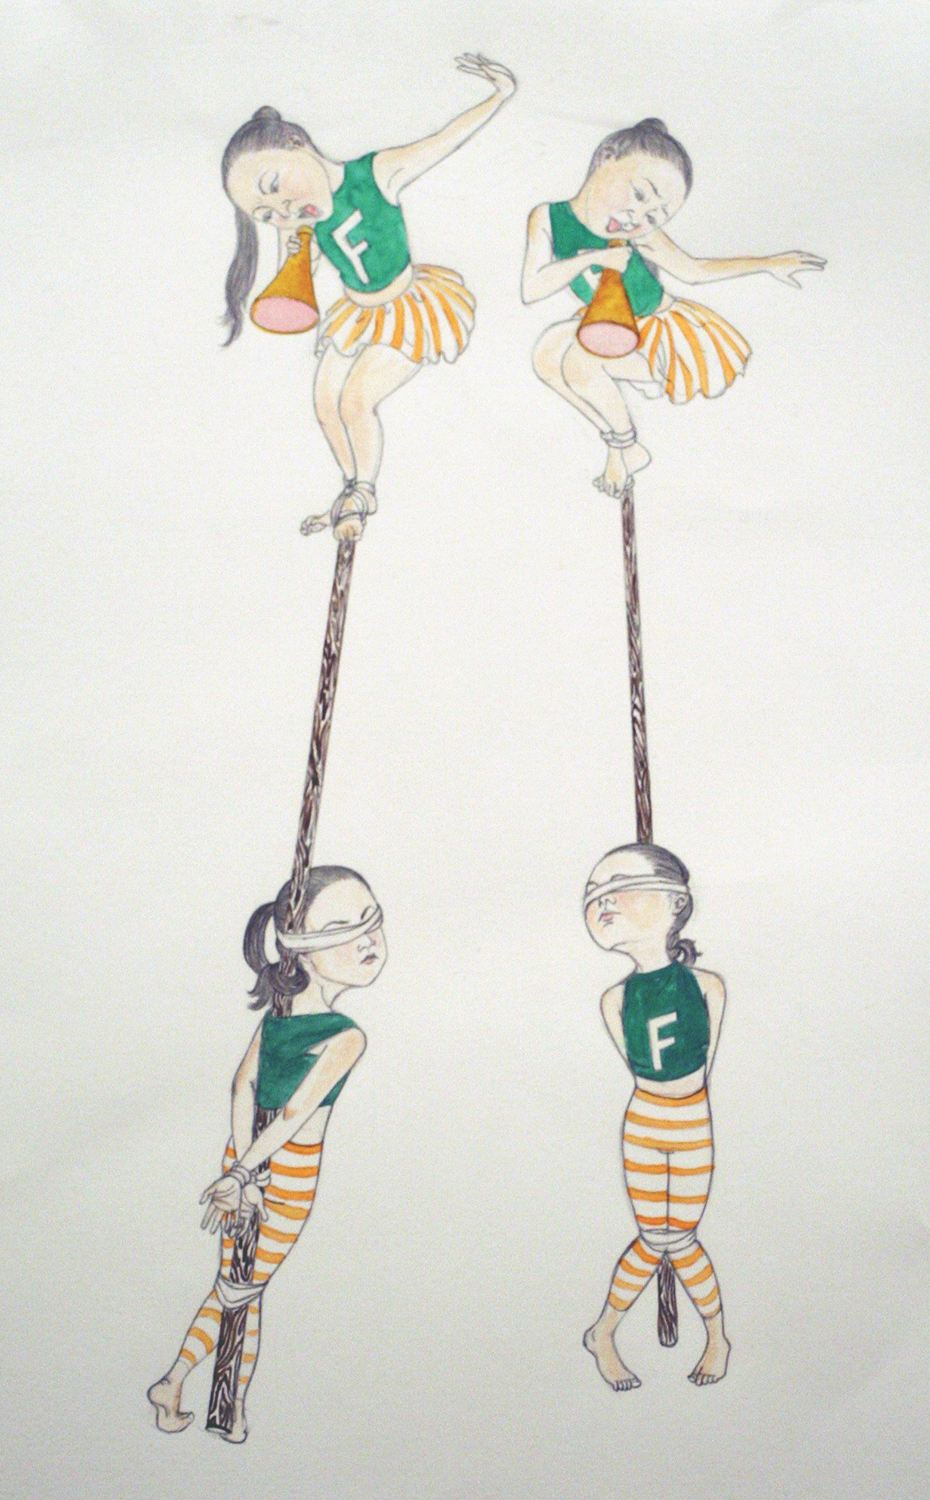 Cheerleading,  2008 Graphite, ink on paper 15 x 11 inches